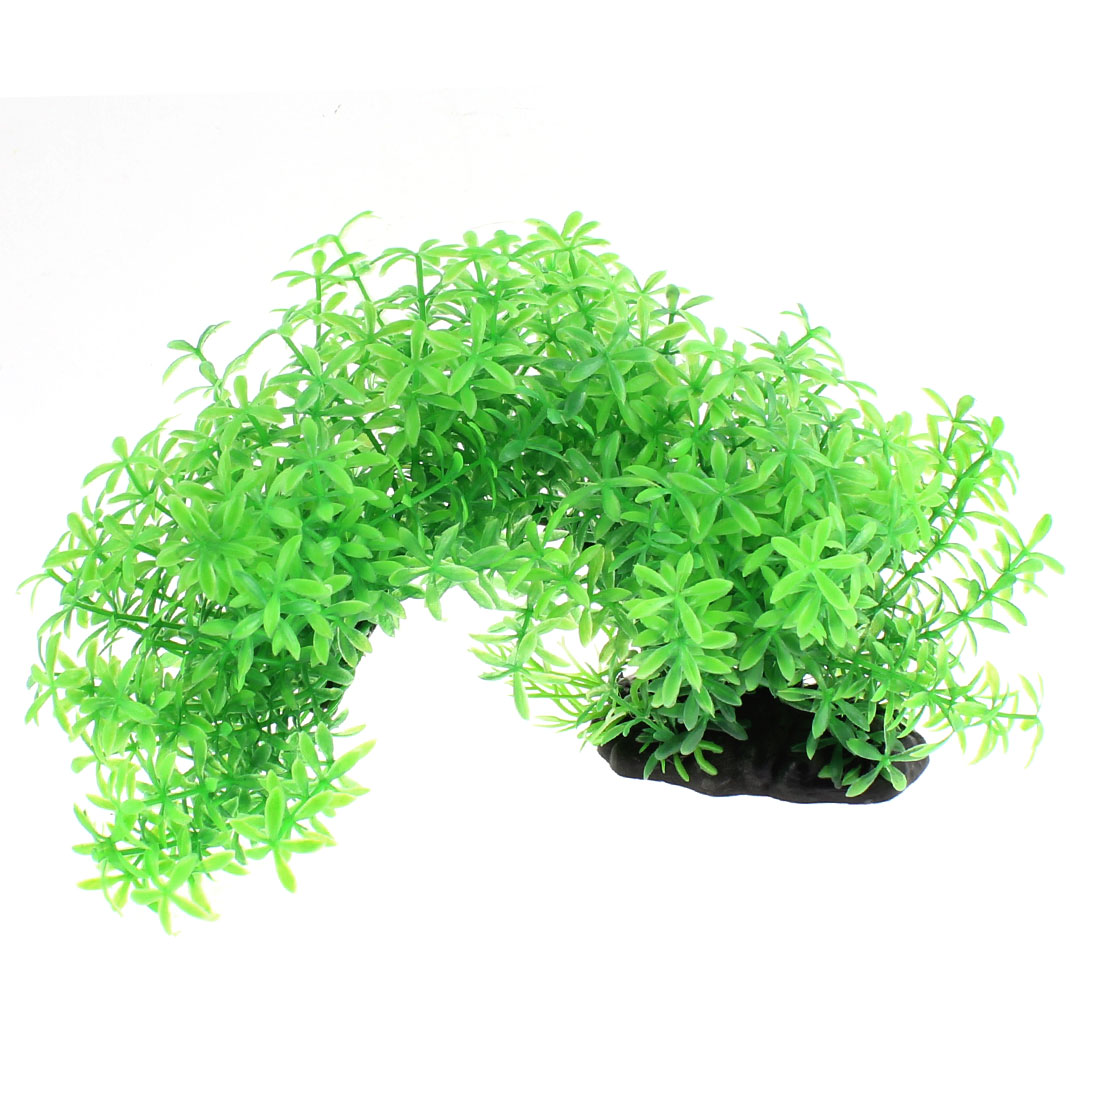 Aquarium Fish Tank Artificial Plastic Water Plant Tree Ornament Landscape Green